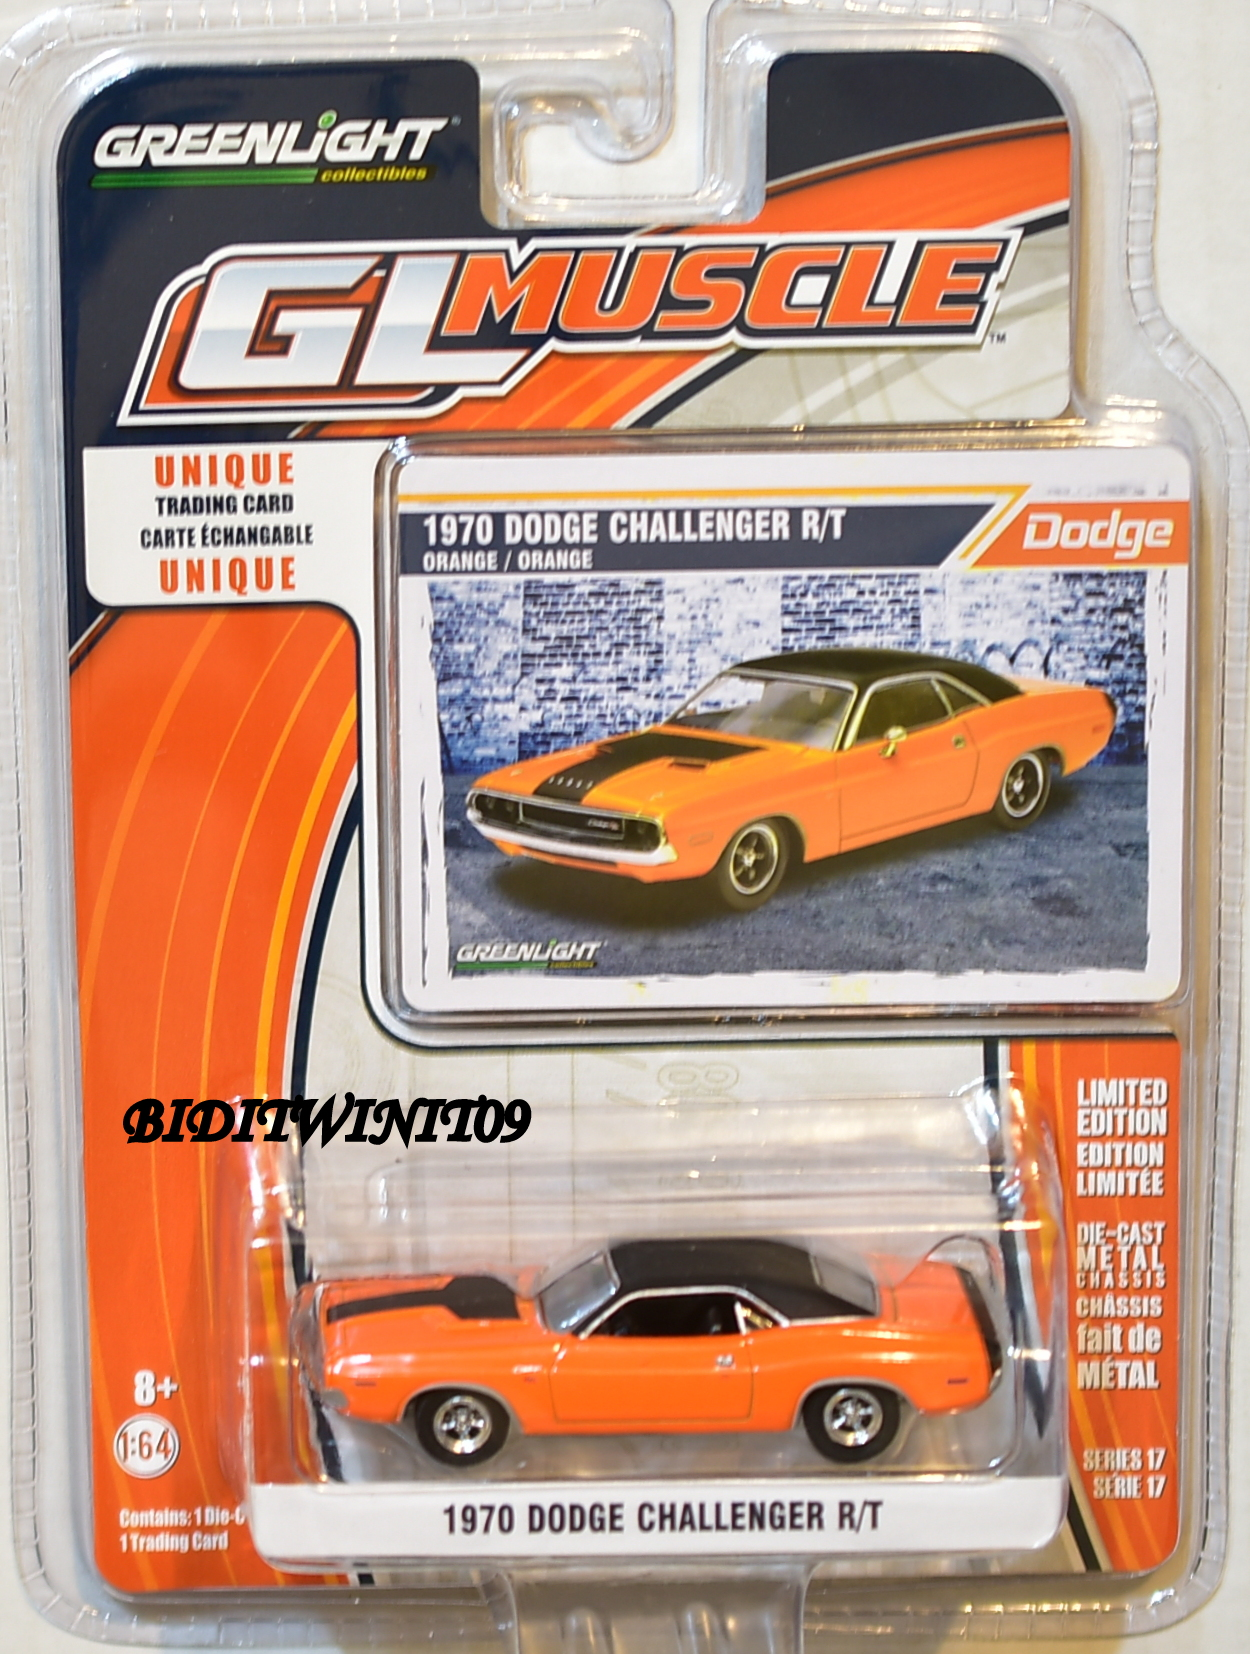 GREENLIGHT GLMUSCLE SERIES 17 1970 DODGE CHALLENGER R/T E+